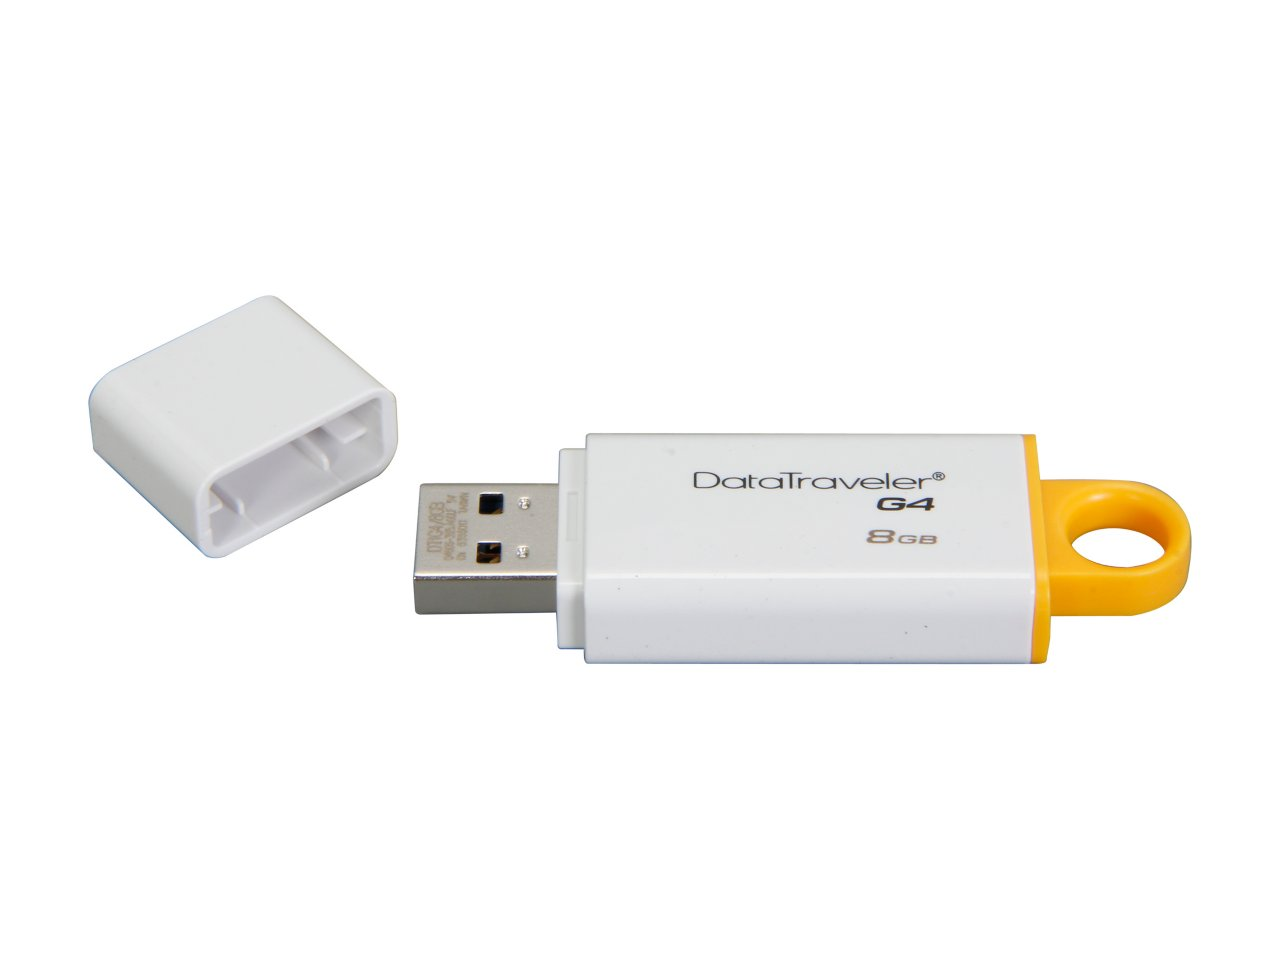 DTIG4/8GB Memoria USB 3.0 Kingston de 8 GB